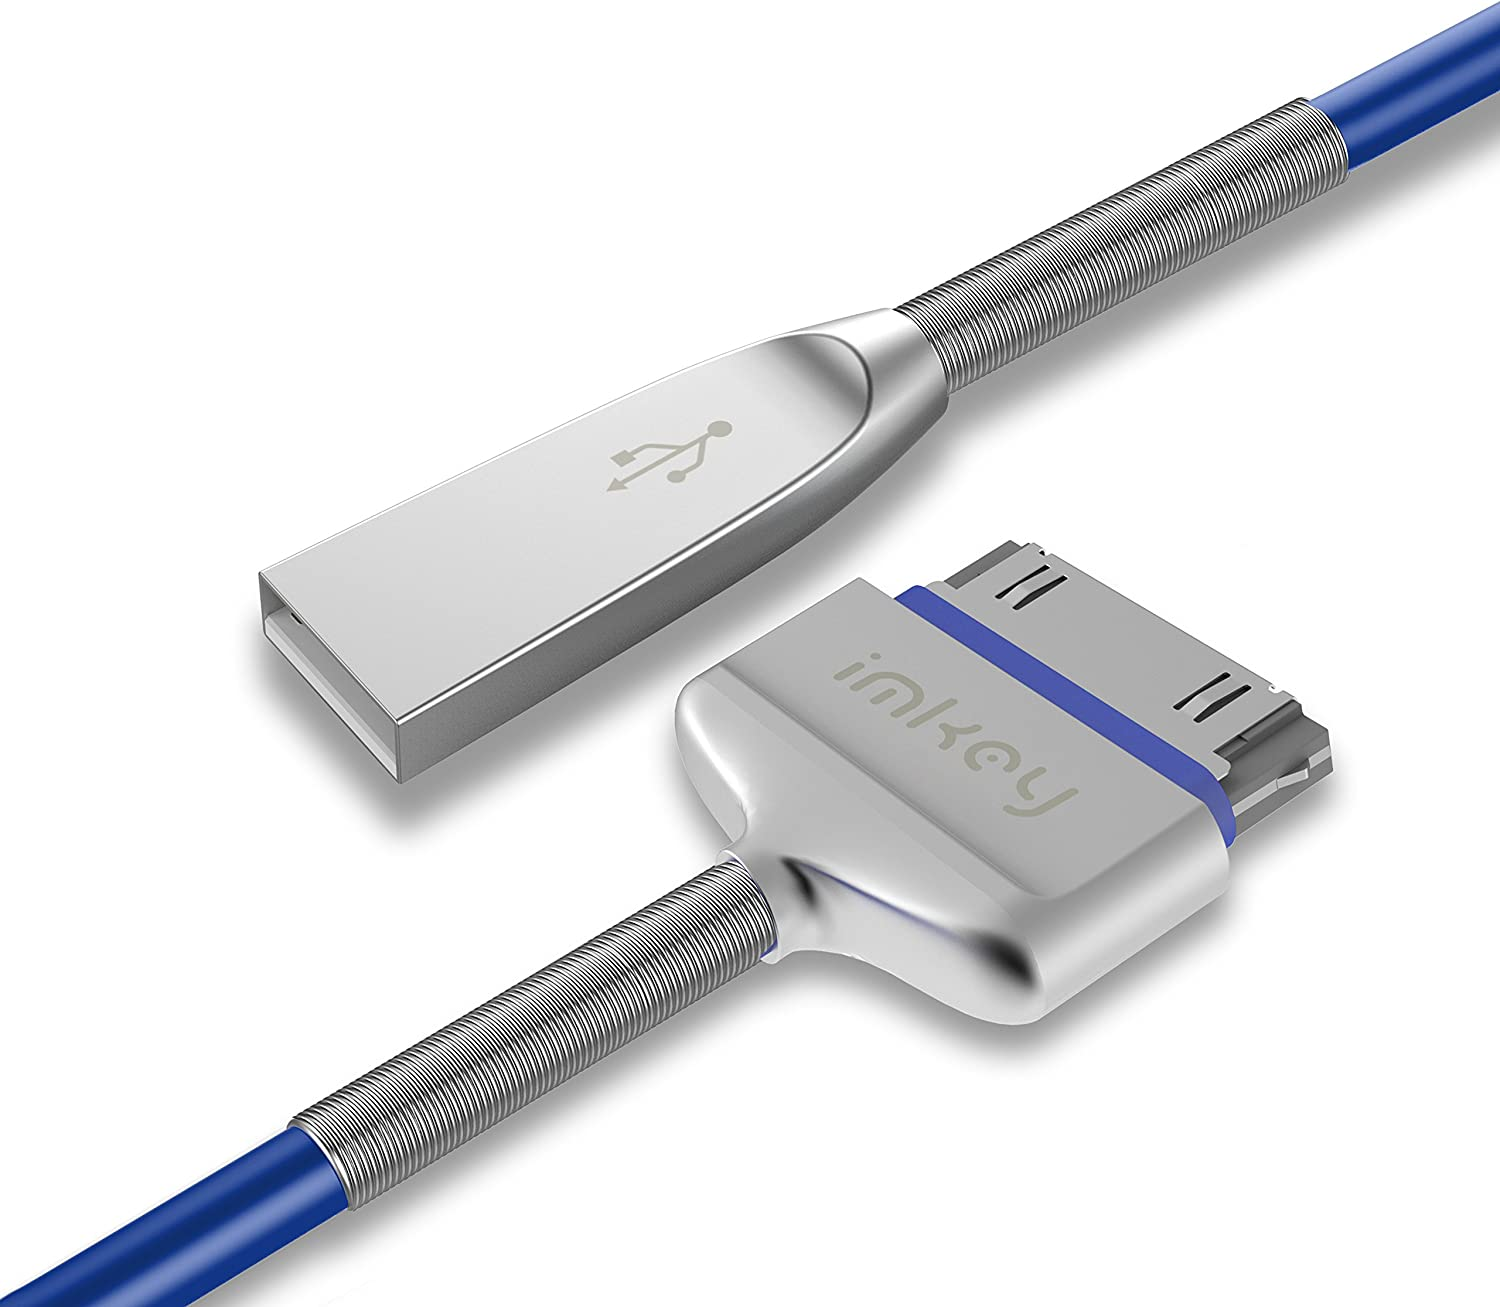 IMKEY 6.5 Feet Zinc-Alloy Spring 30-Pin to USB Sync and Charging Cable Compatible for iPhone4 / 4S, iPad 1/2 / 3, iPod, Blue